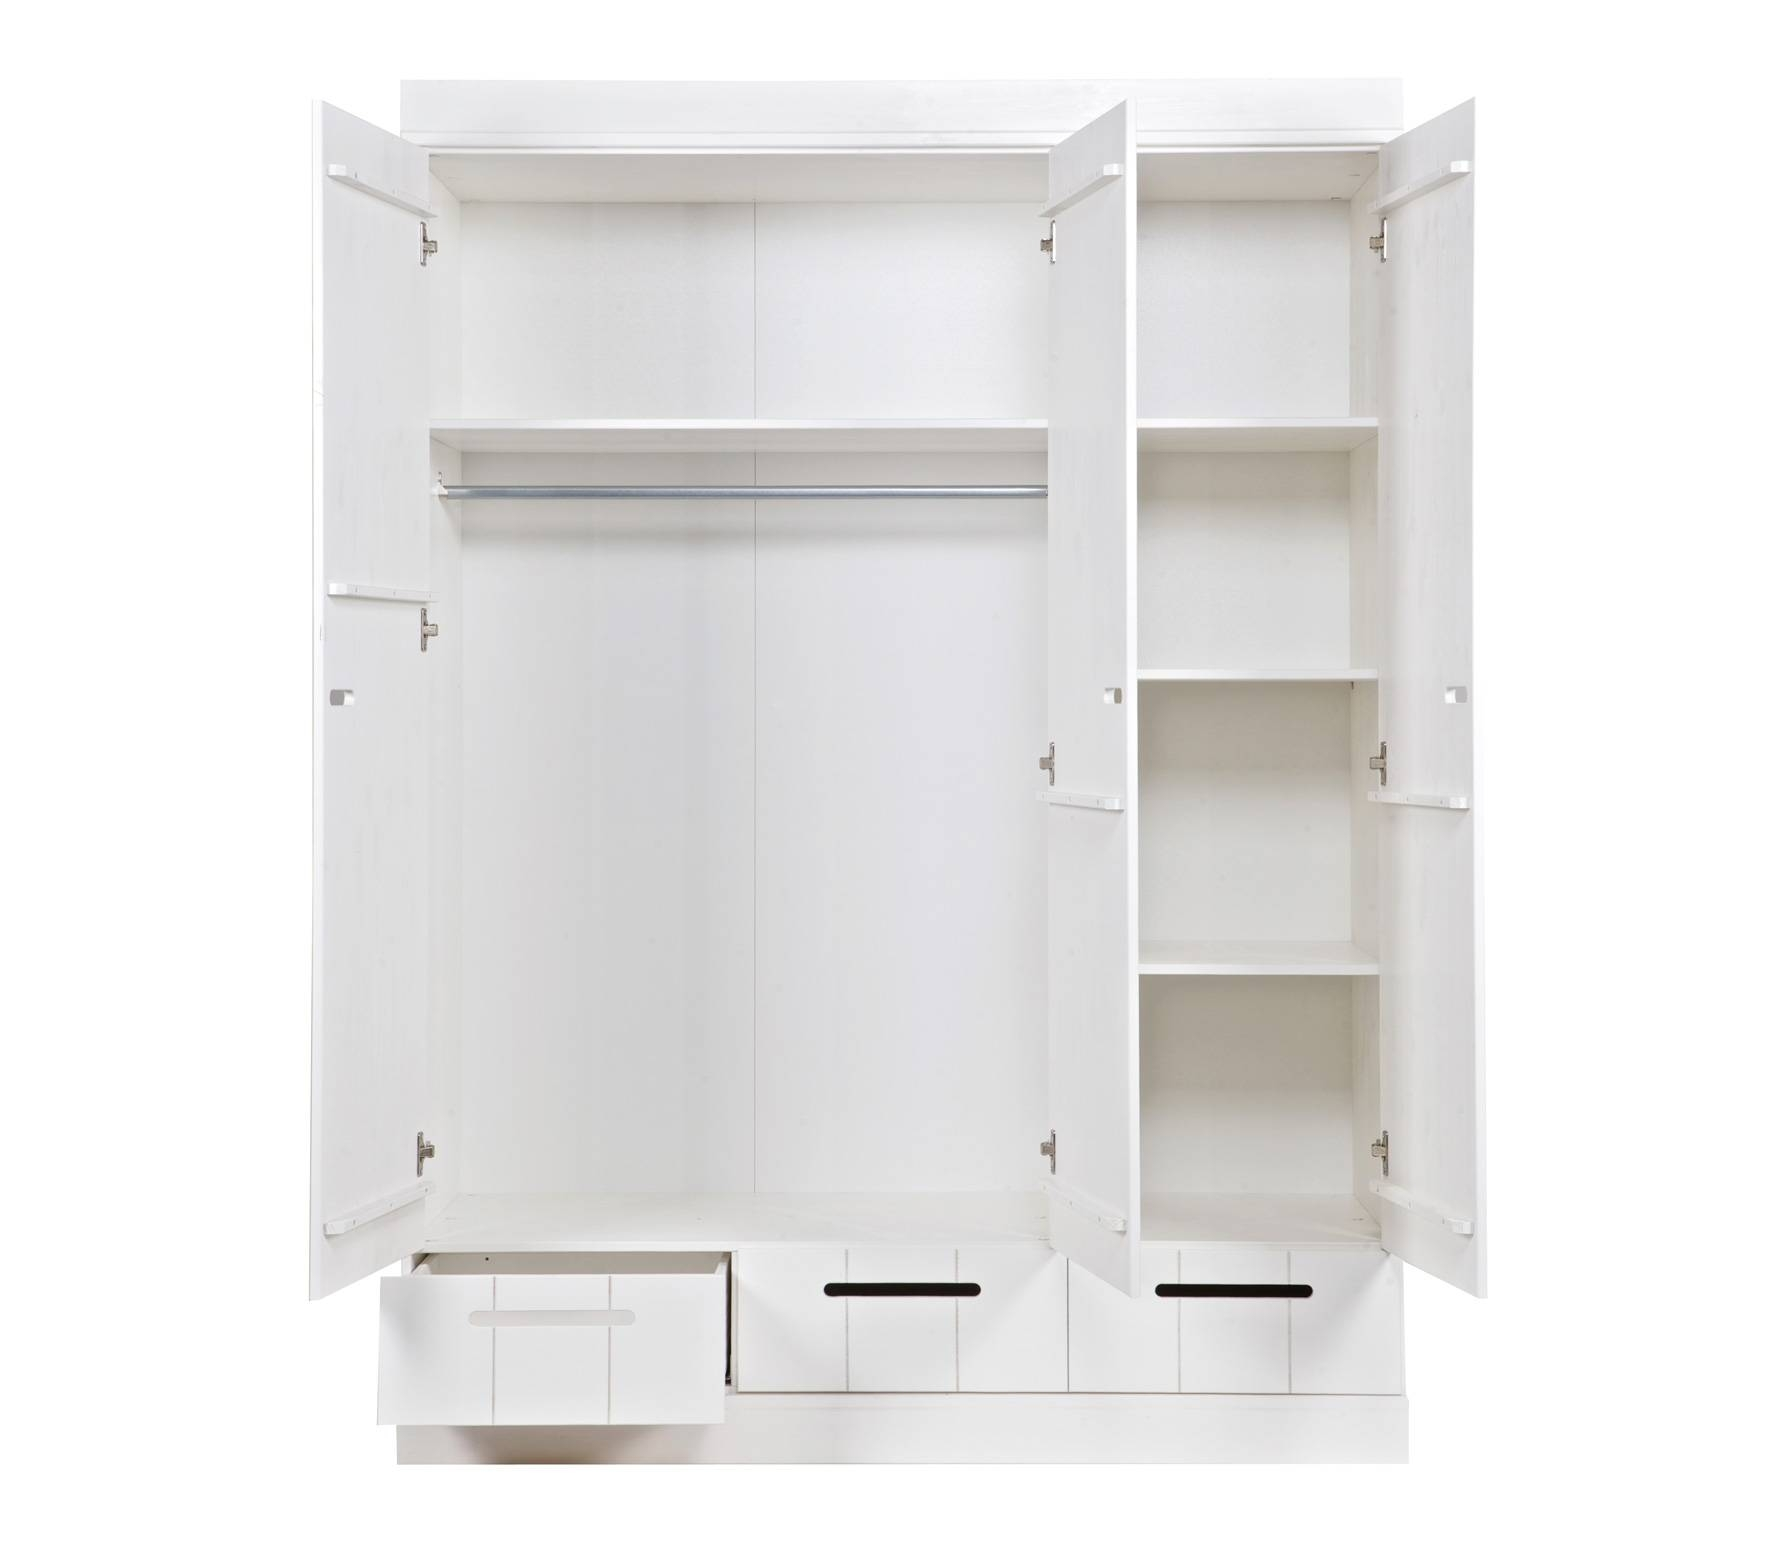 Connect 3-Door Locker Wardrobe With 3 Drawers, Standard Interior intended for 3 Door Wardrobe With Drawers And Shelves (Image 10 of 30)